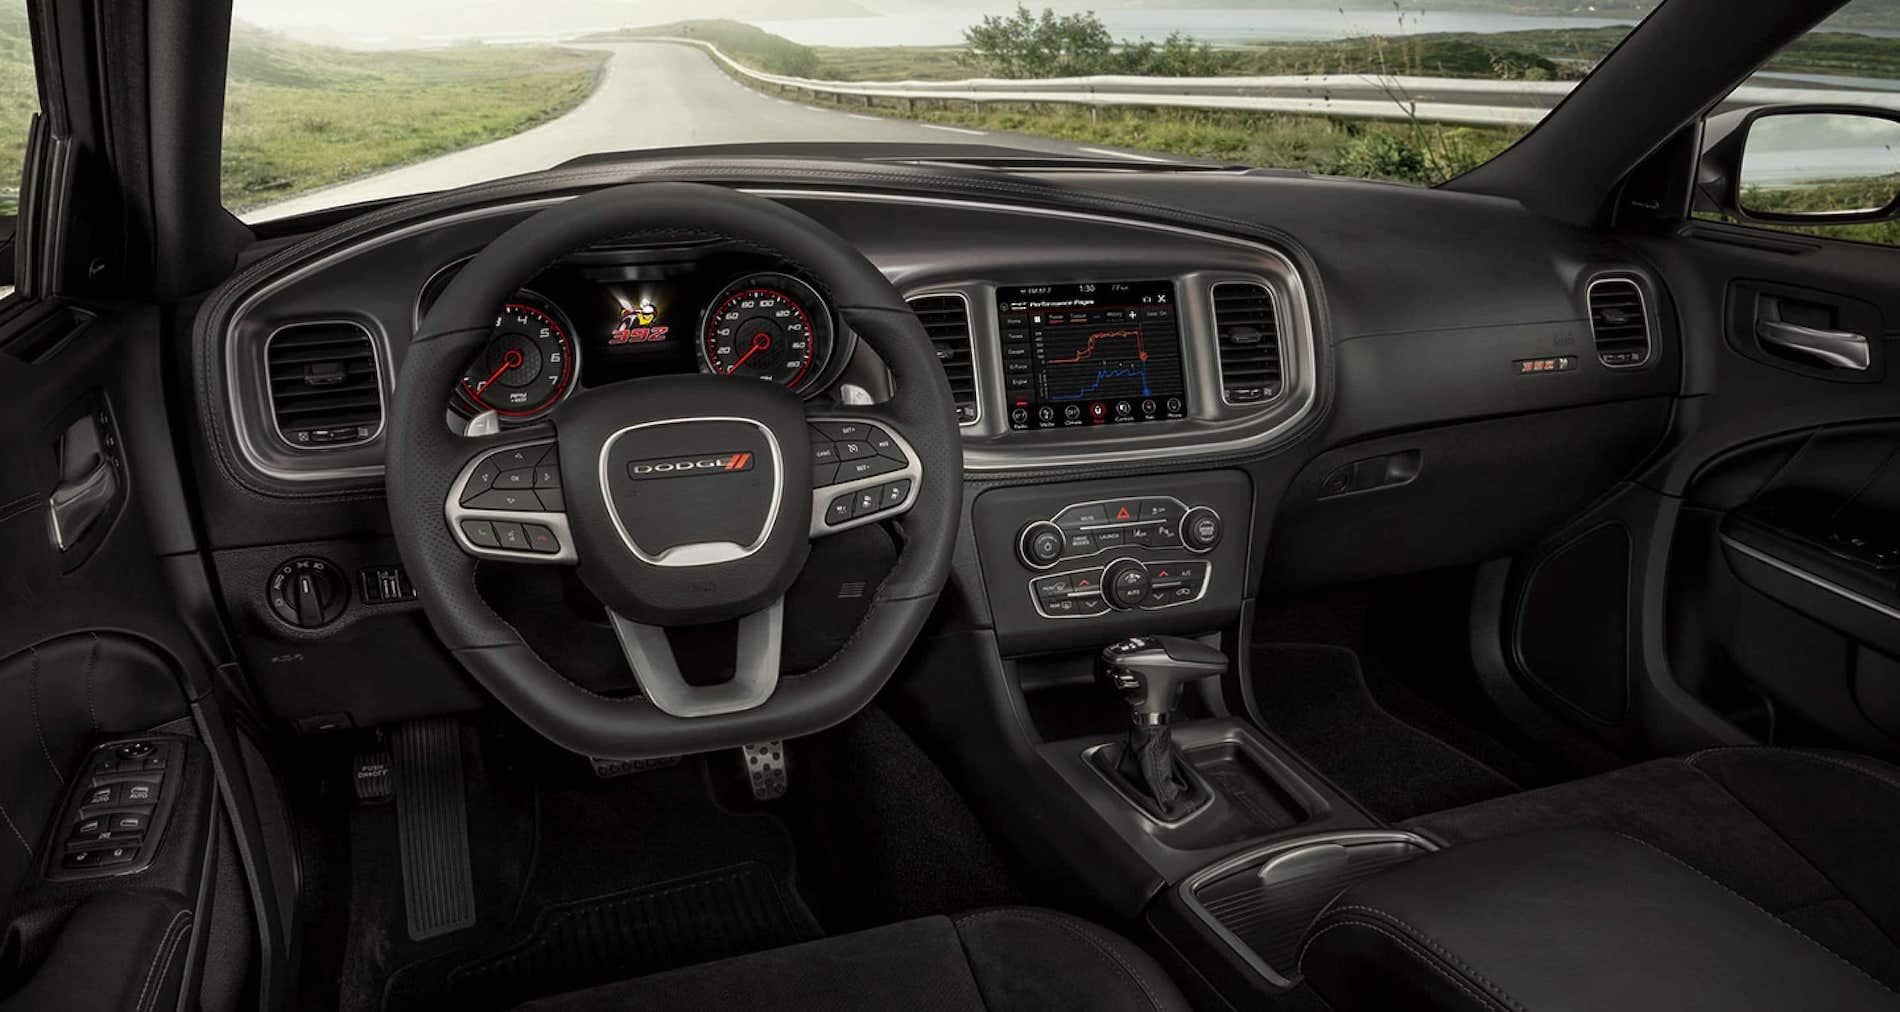 2021 Dodge Charger interior available in Salisbury MD